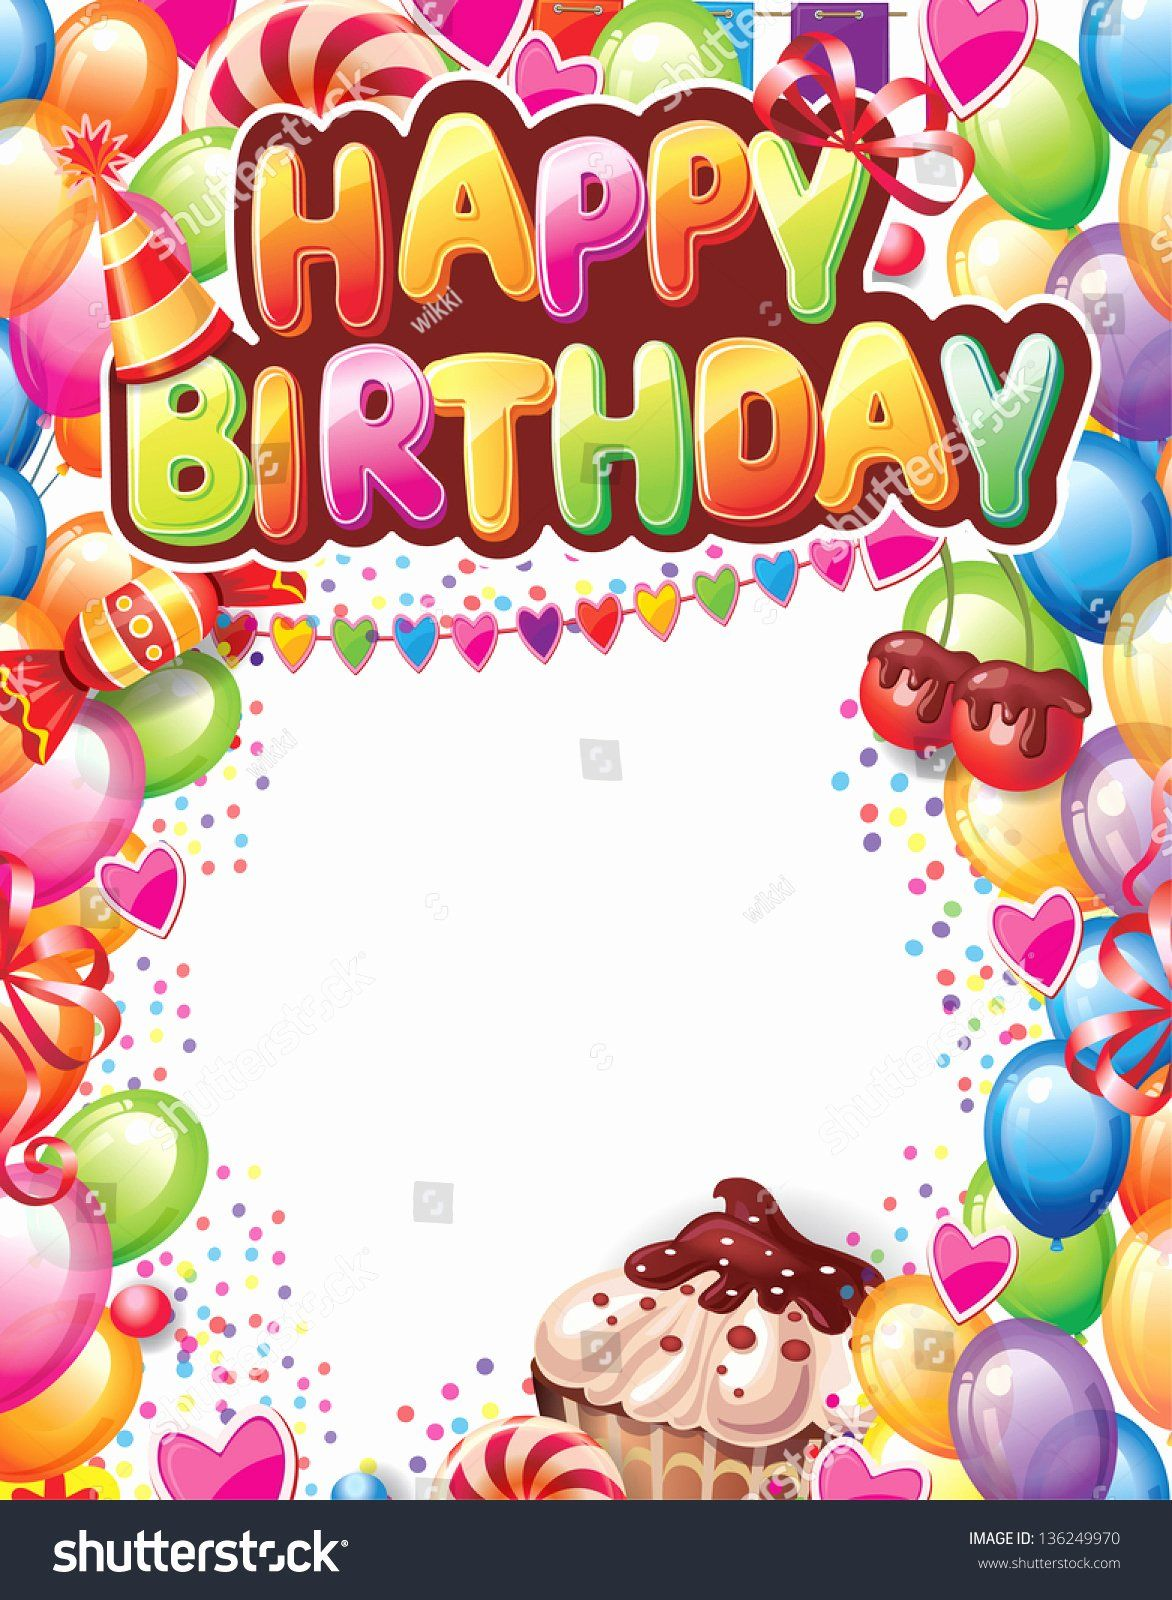 birthday card free template beautiful template for happy